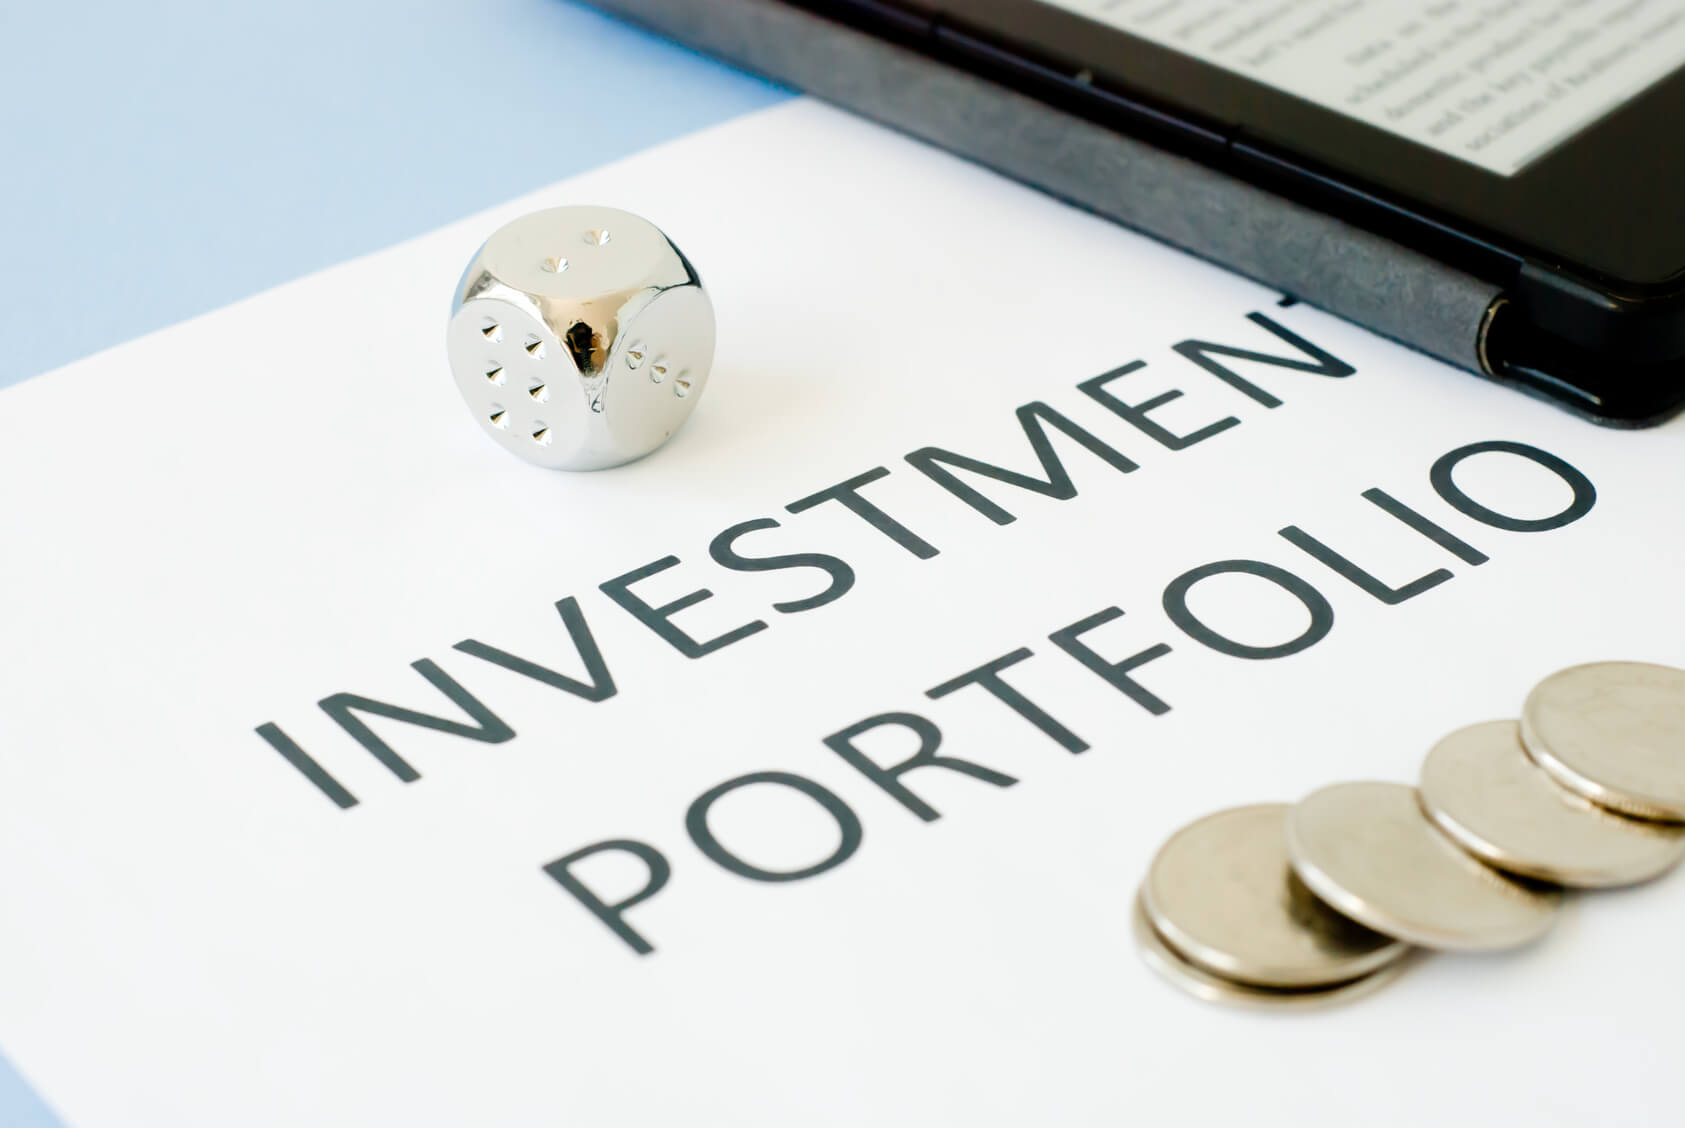 Investment portfolio on a desk, with coins and a dice